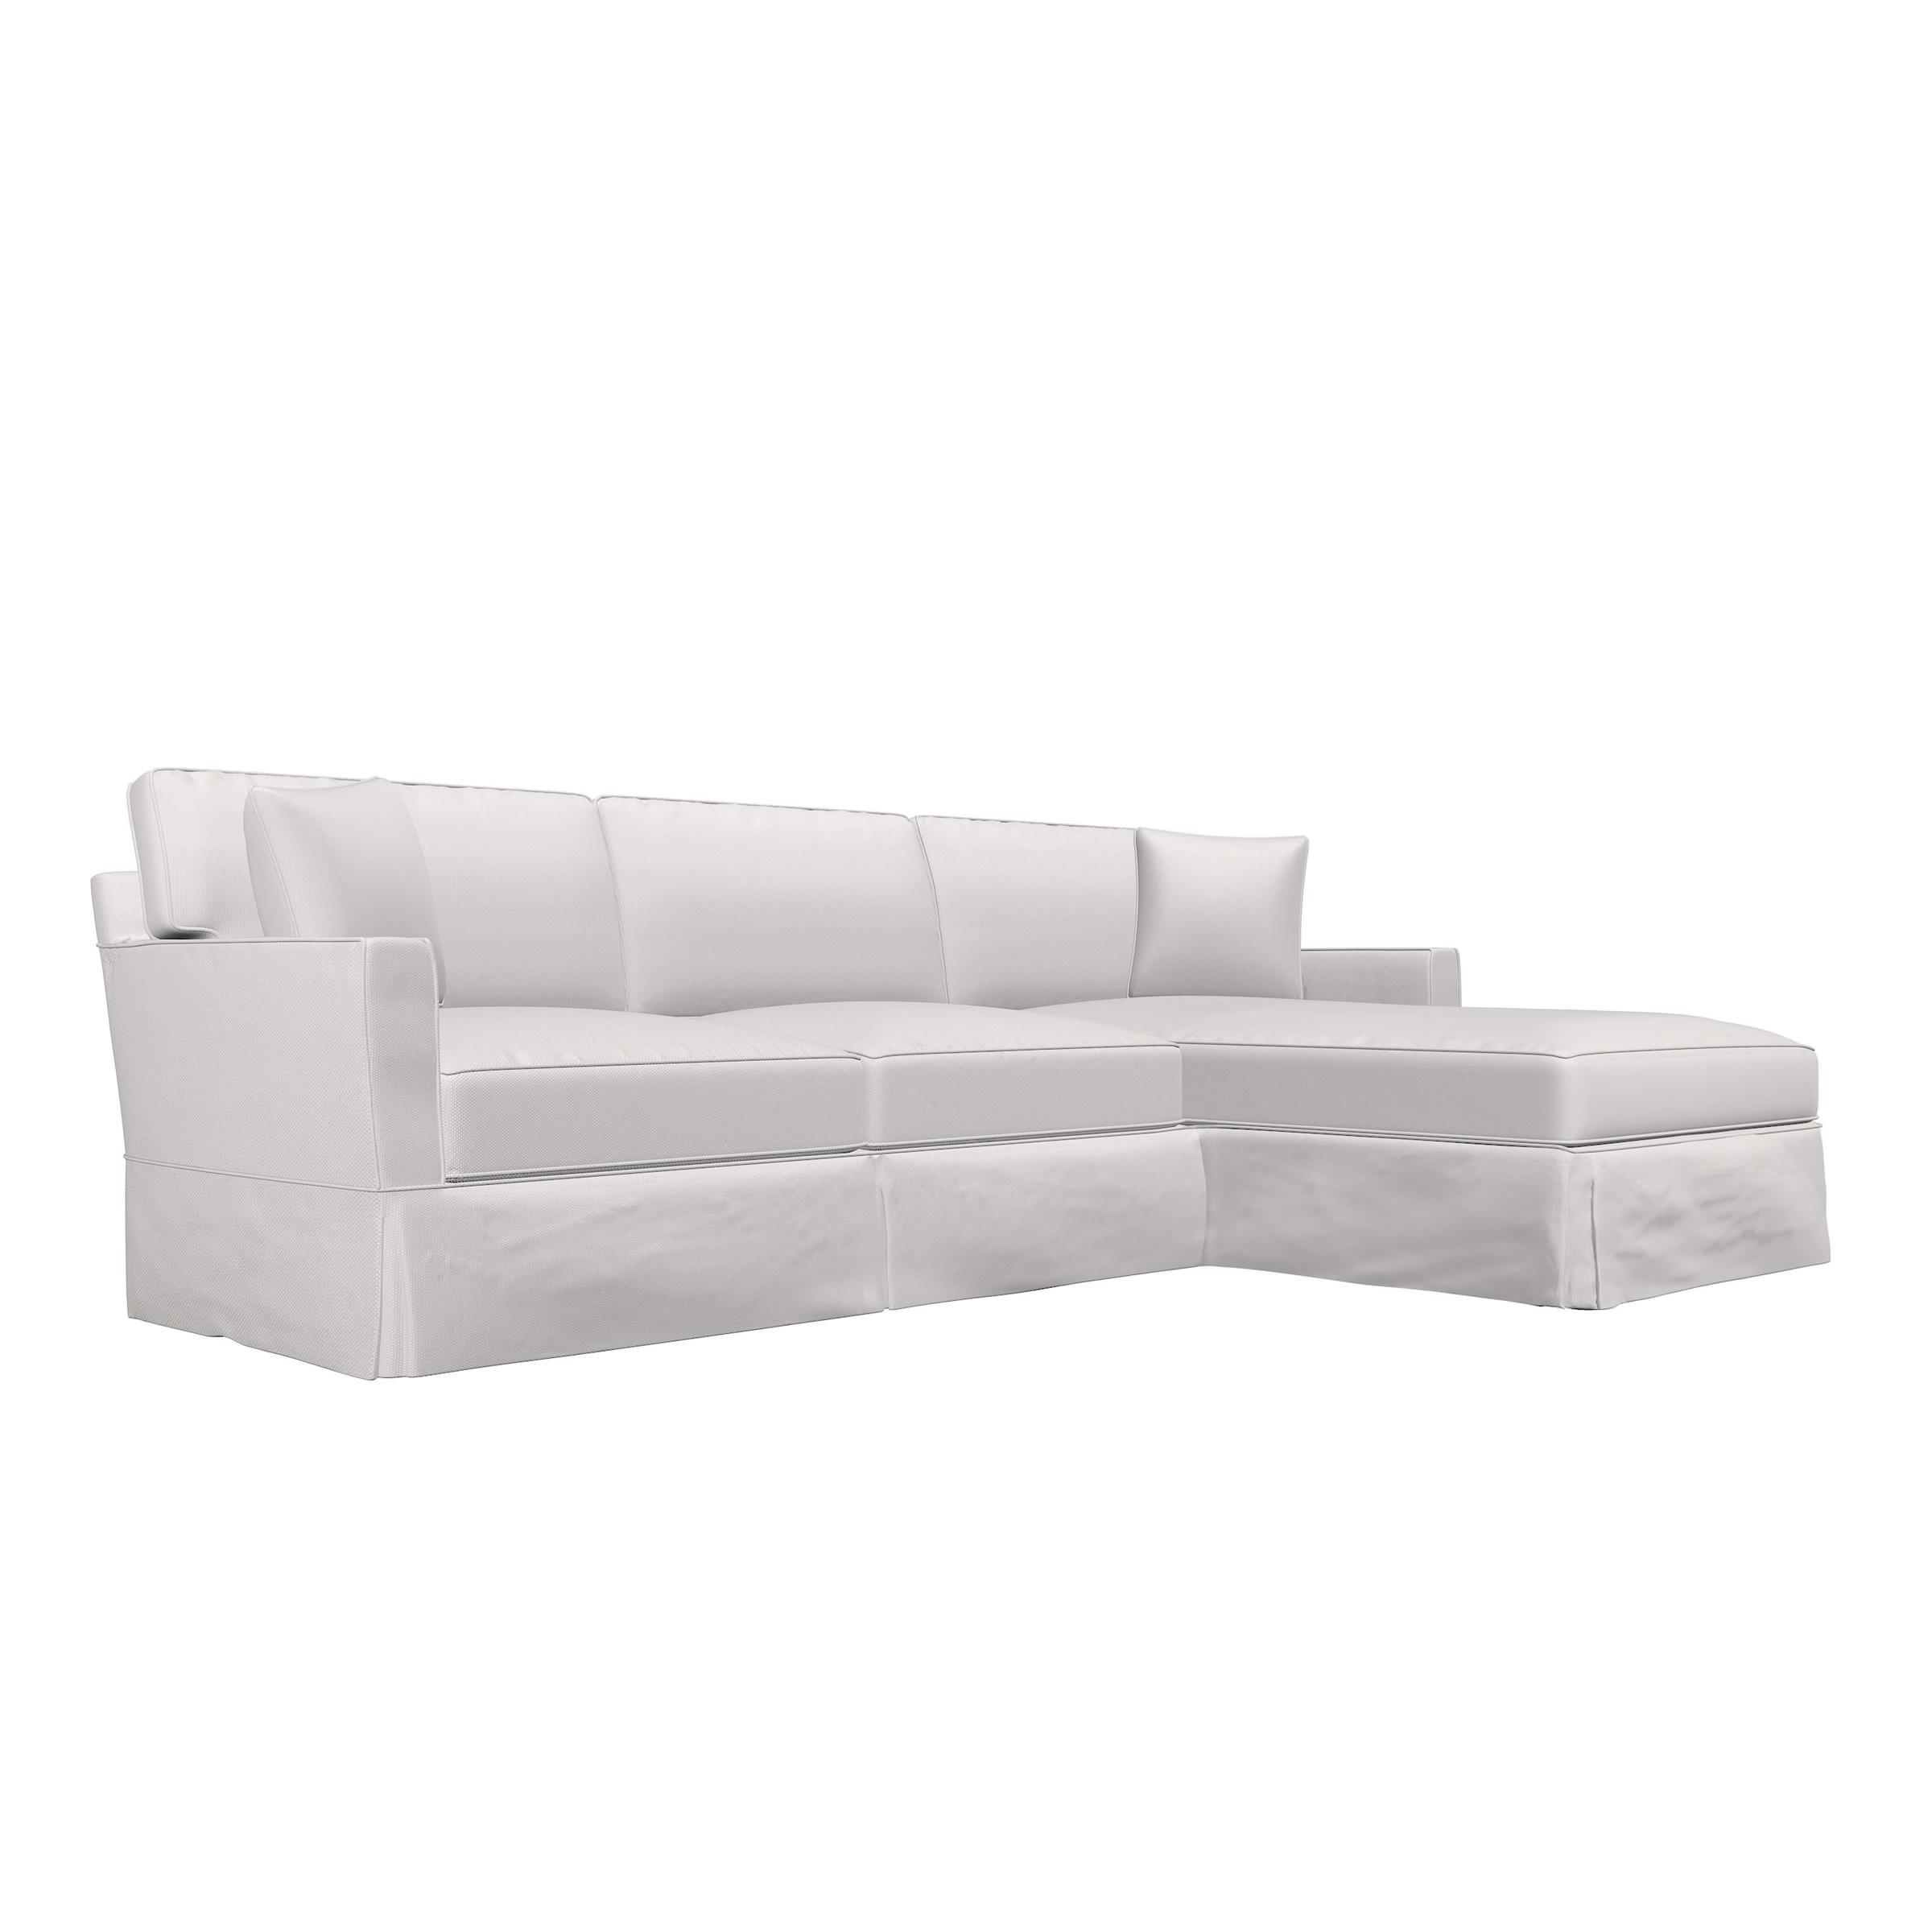 Slipcover Sofa Chaise Lounge Several Fabric Choices